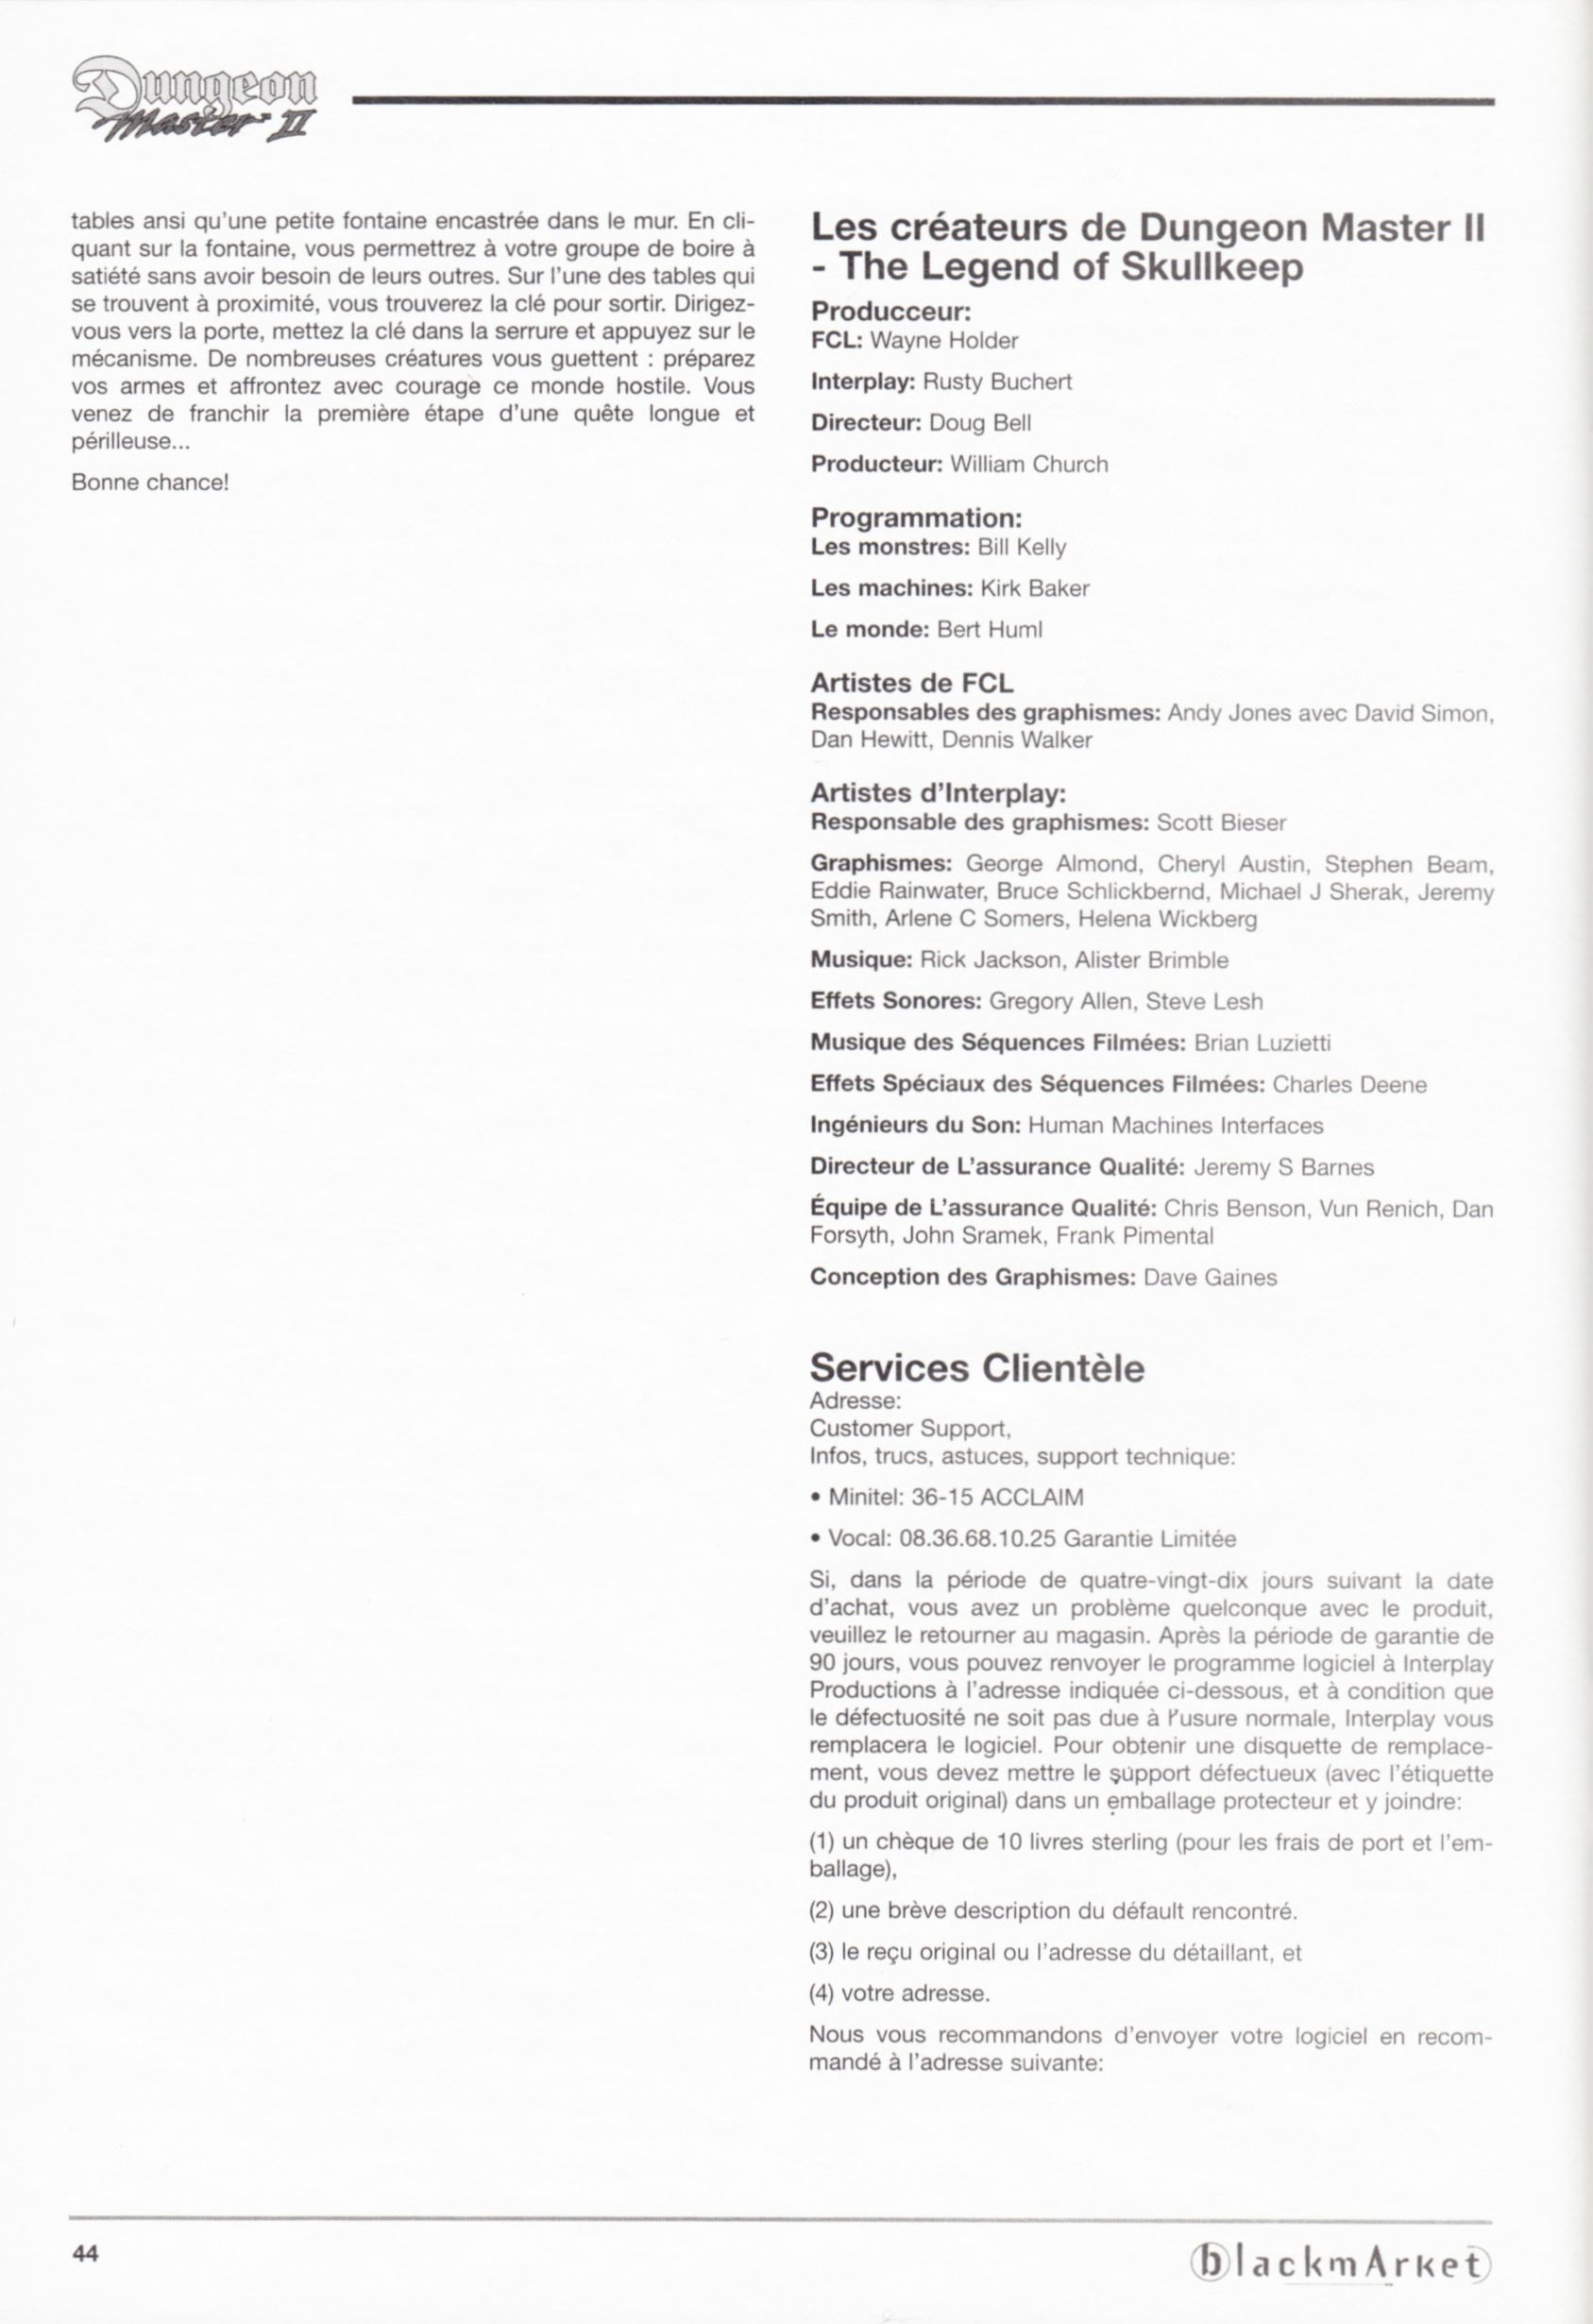 Game - Dungeon Master II - DE - PC - Blackmarket With Manual - Manual - Page 046 - Scan